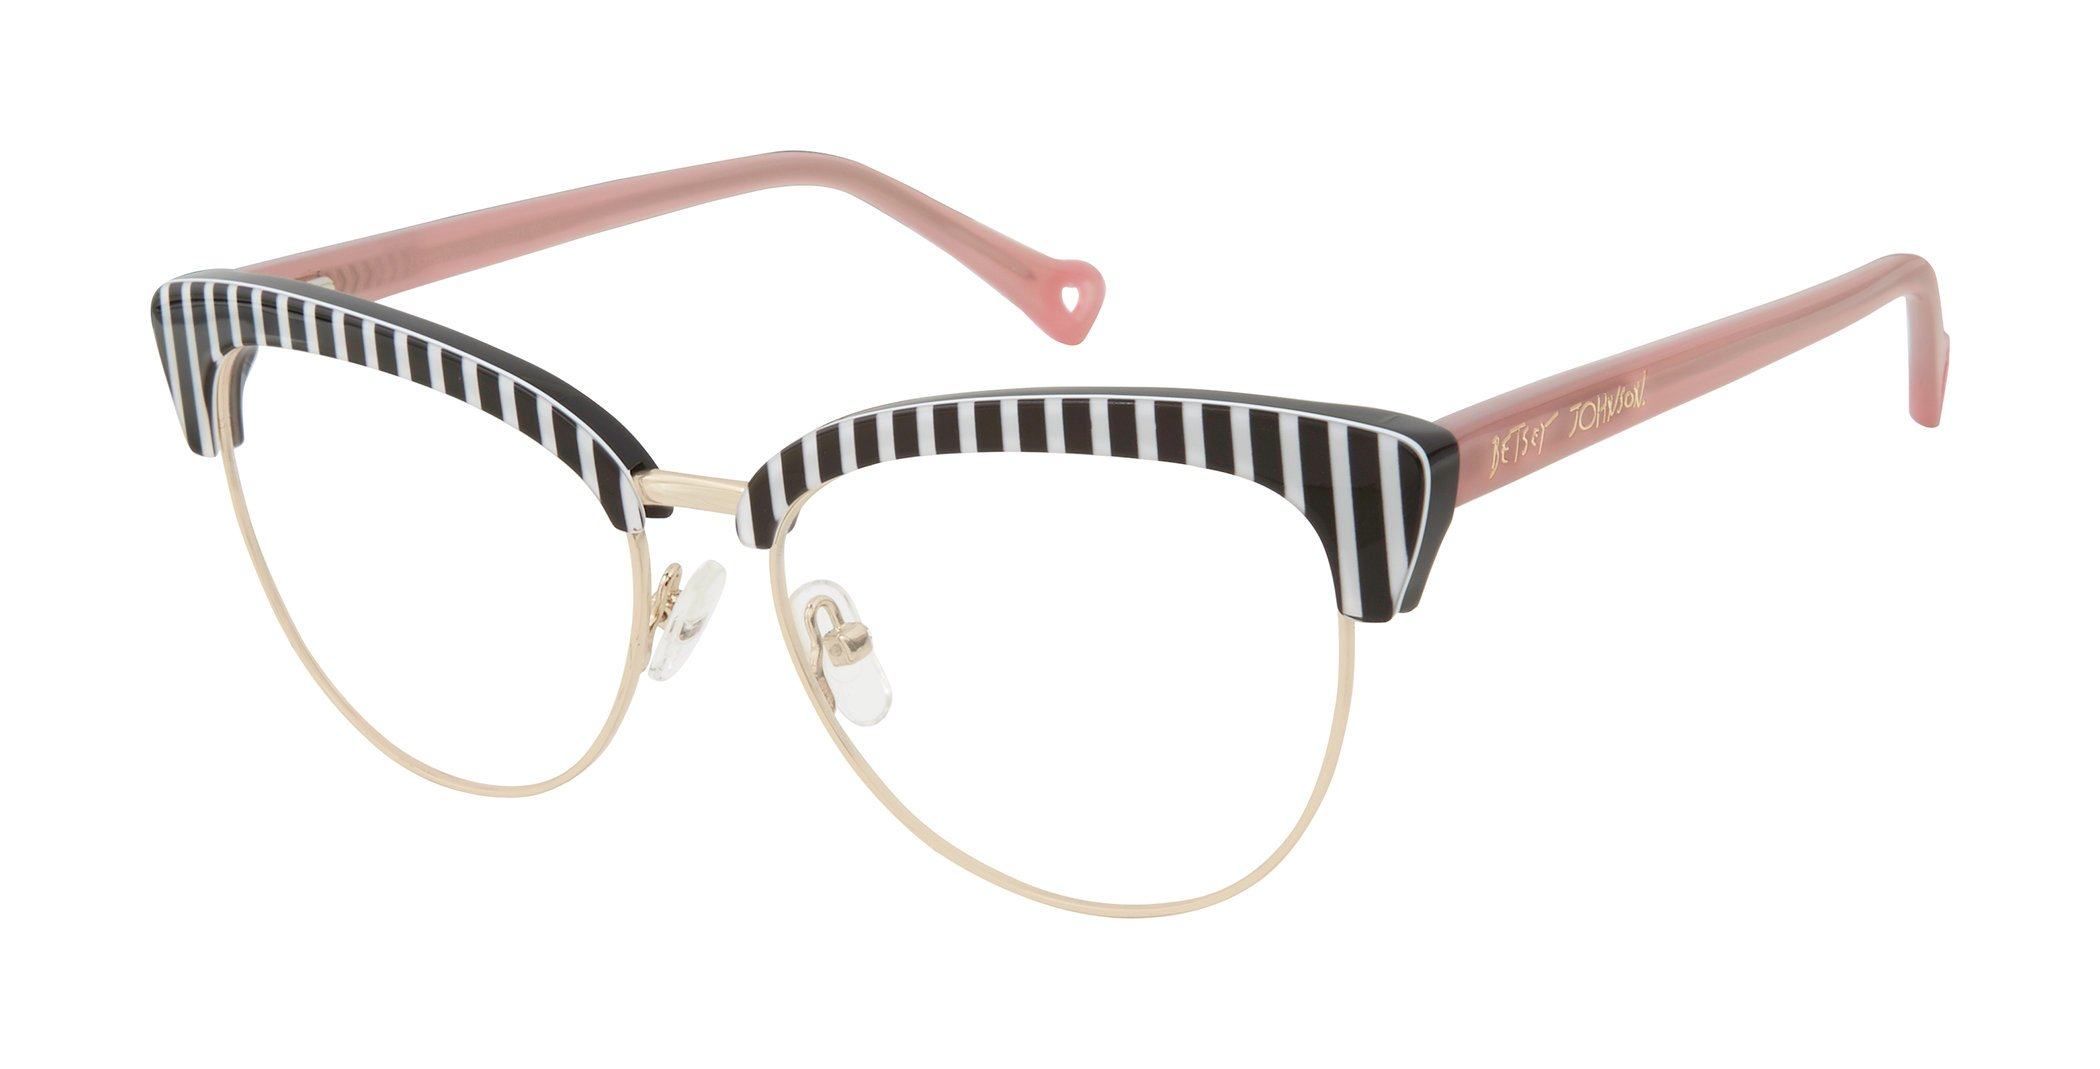 64dc391169 Betsey Johnson Designer Eyeglasses